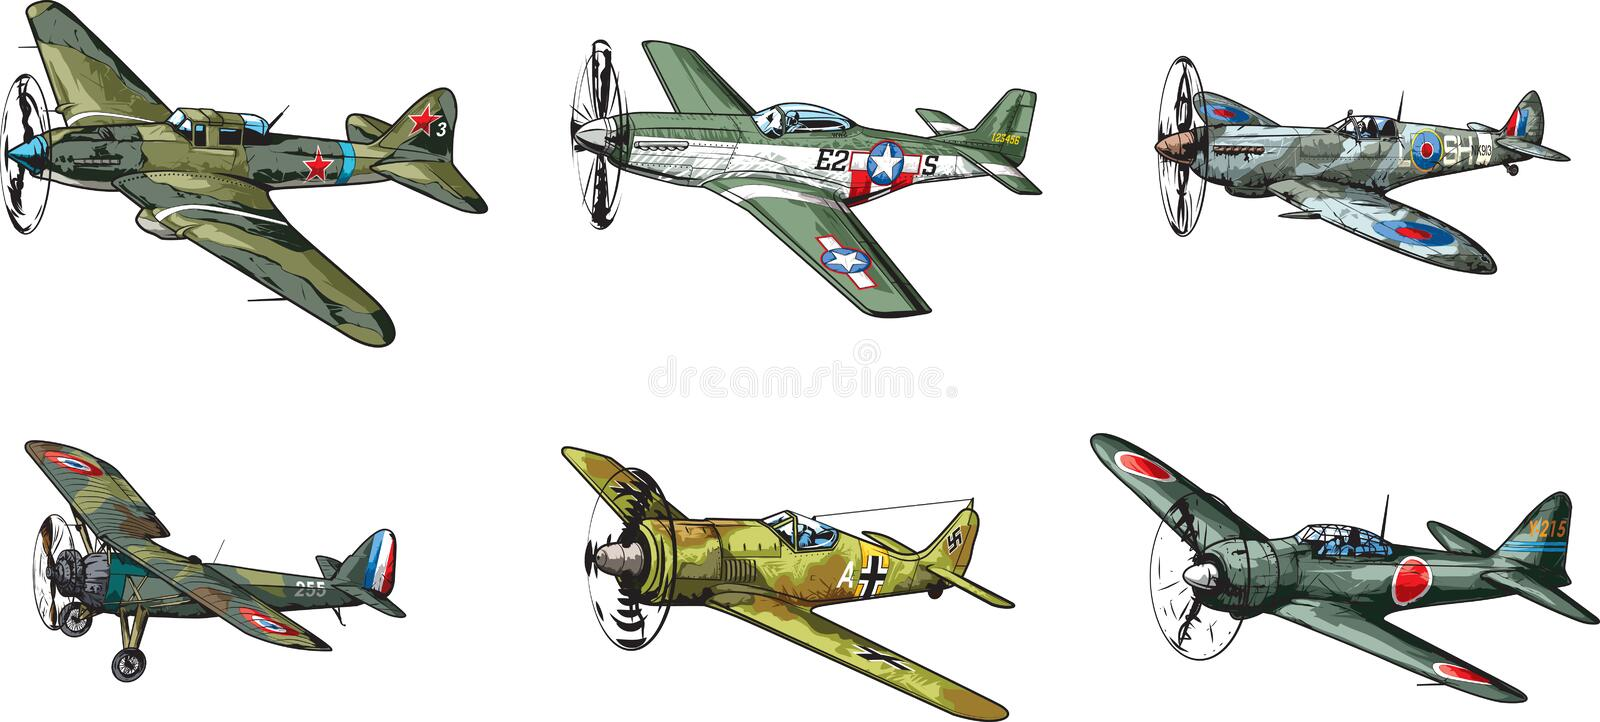 WW2 aircraft. Vector collection of military aircraft of World War II royalty free illustration